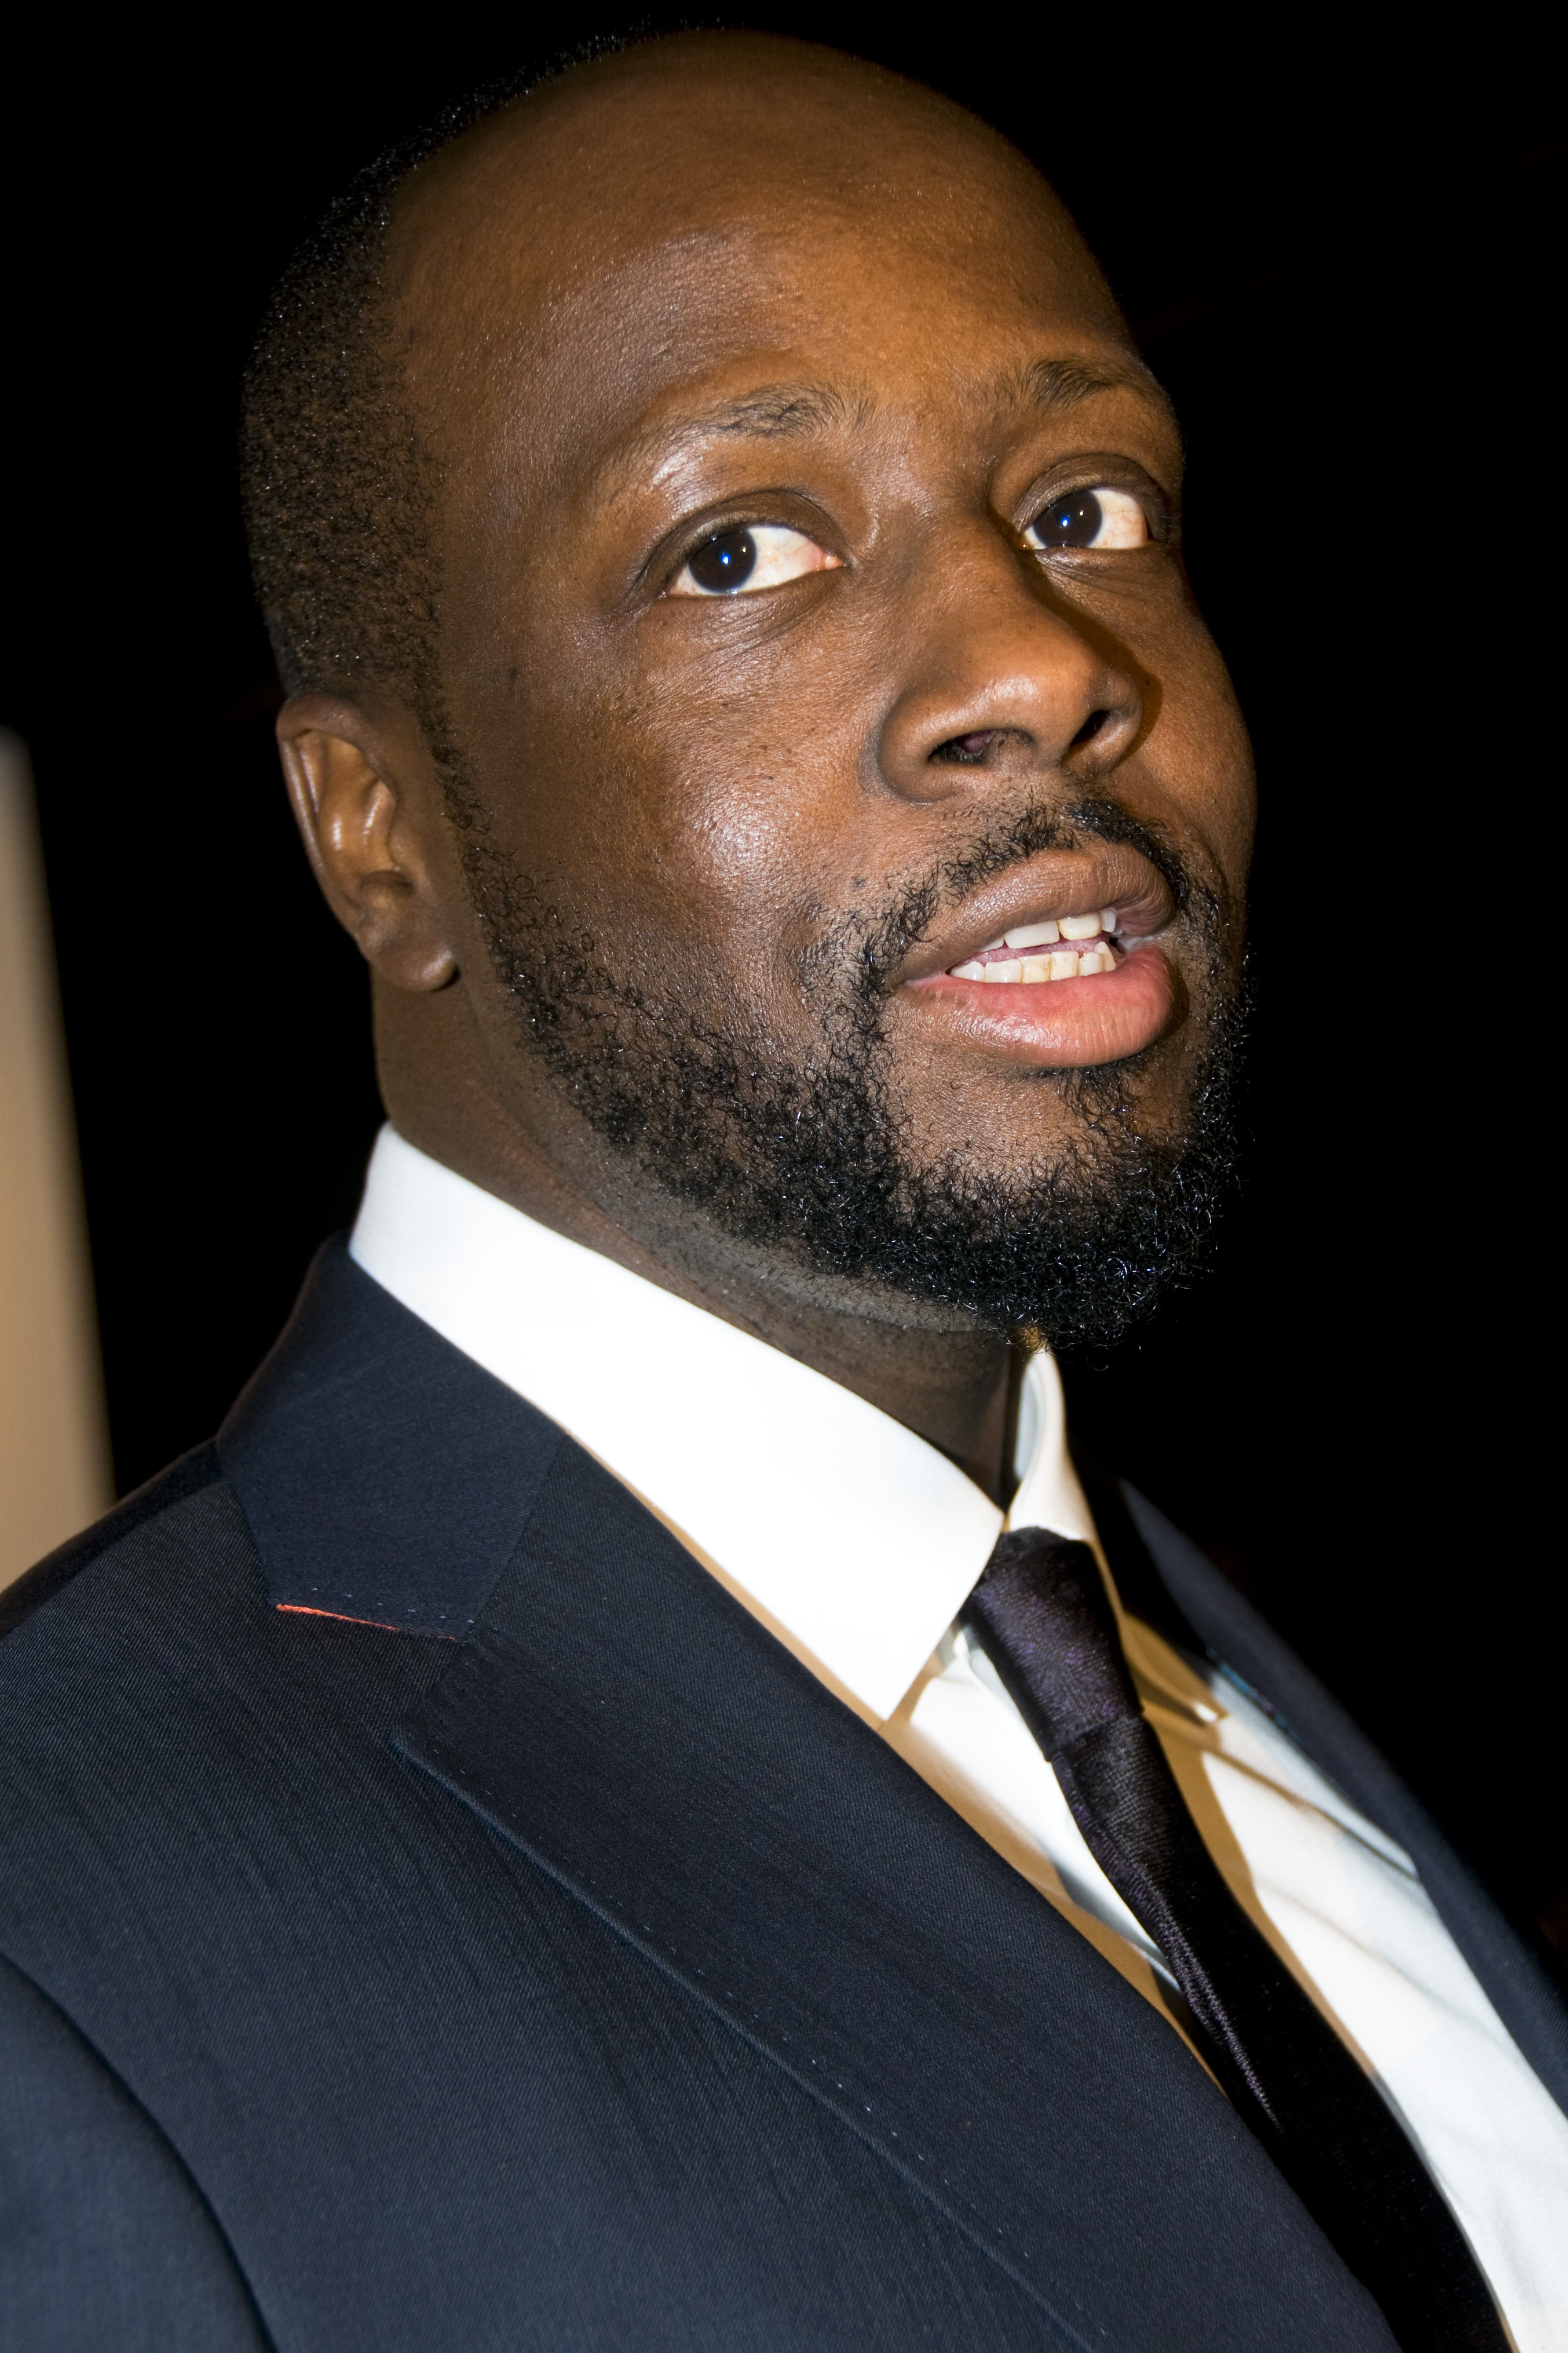 The 48-year old son of father (?) and mother(?) Wyclef Jean in 2018 photo. Wyclef Jean earned a  million dollar salary - leaving the net worth at 10 million in 2018